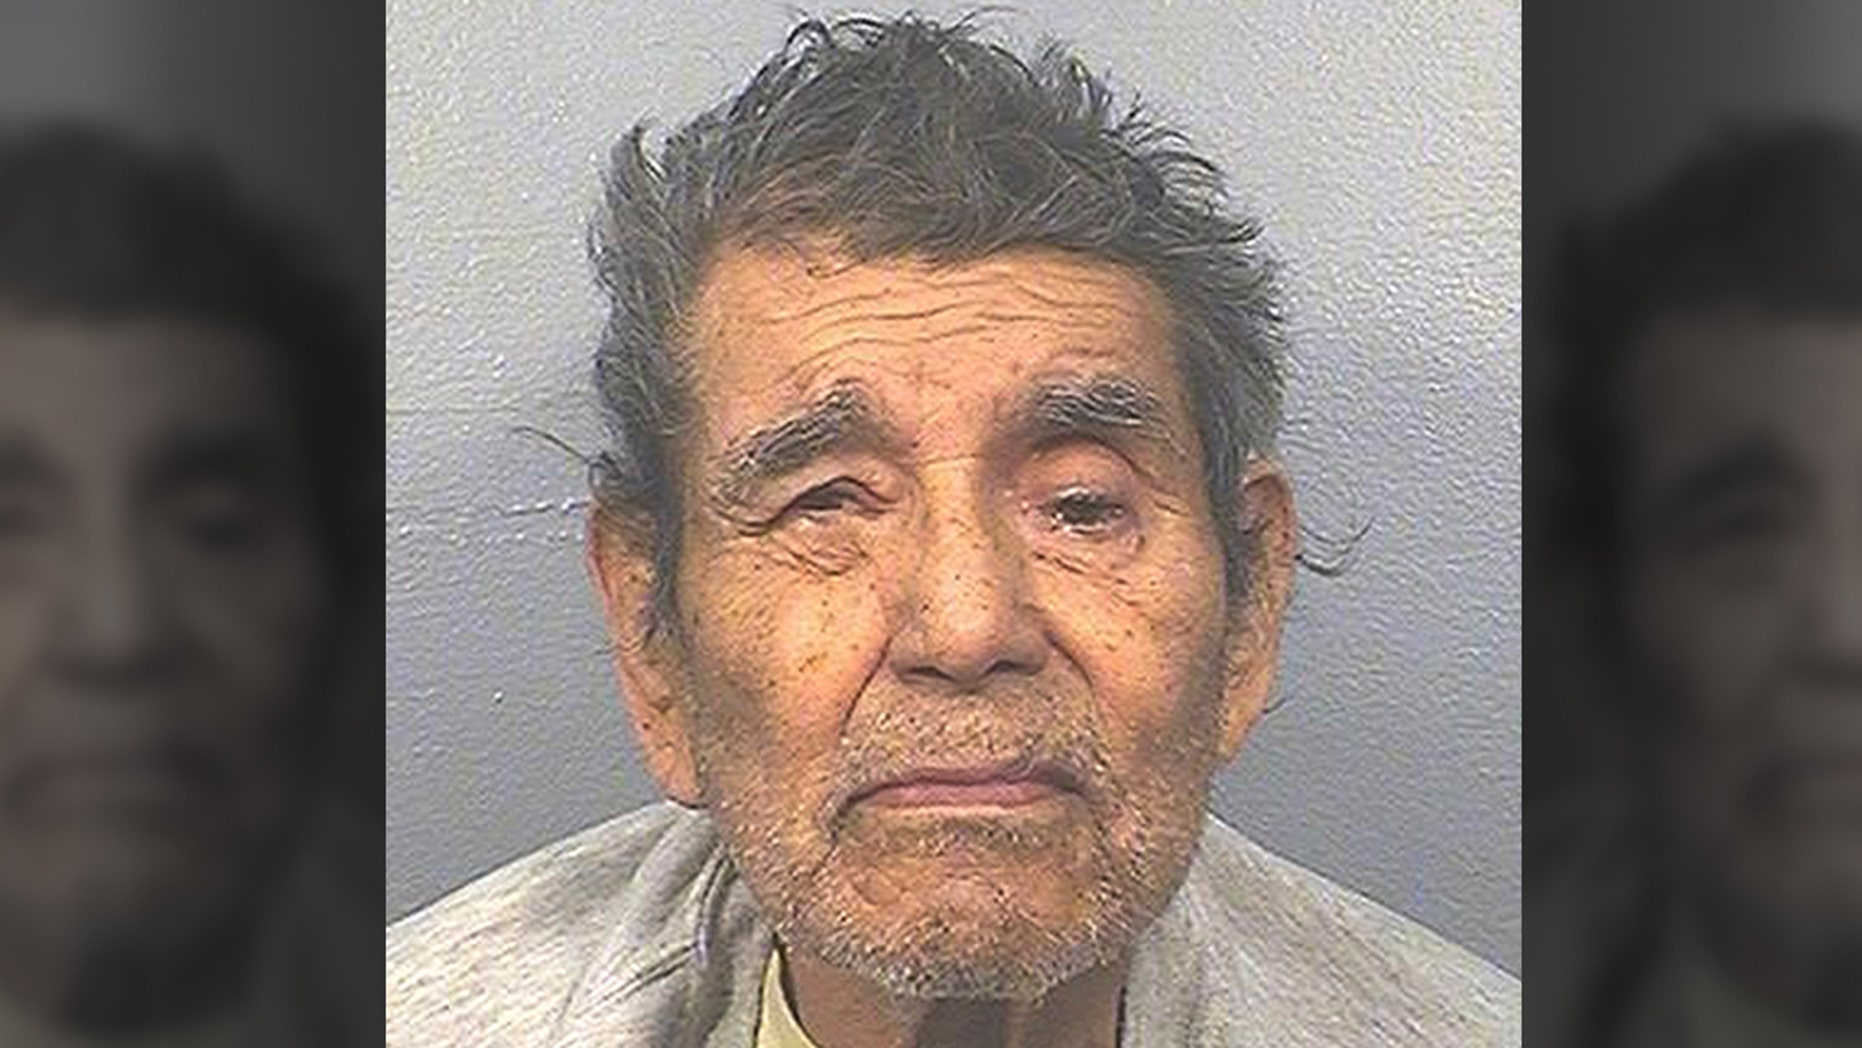 In this March 23, 2018, photo released by the California Department of Corrections and Rehabilitation is Juan Vallejo Corona. California State Prison-Corcoran inmate Corona, 85, died of natural causes on Monday, March 4, 2019, at an outside hospital. Corona was serving 25 concurrent life sentences for 25 counts of first-degree murder. His victims were all farm workers. (California Department of Corrections and Rehabilitation via AP)